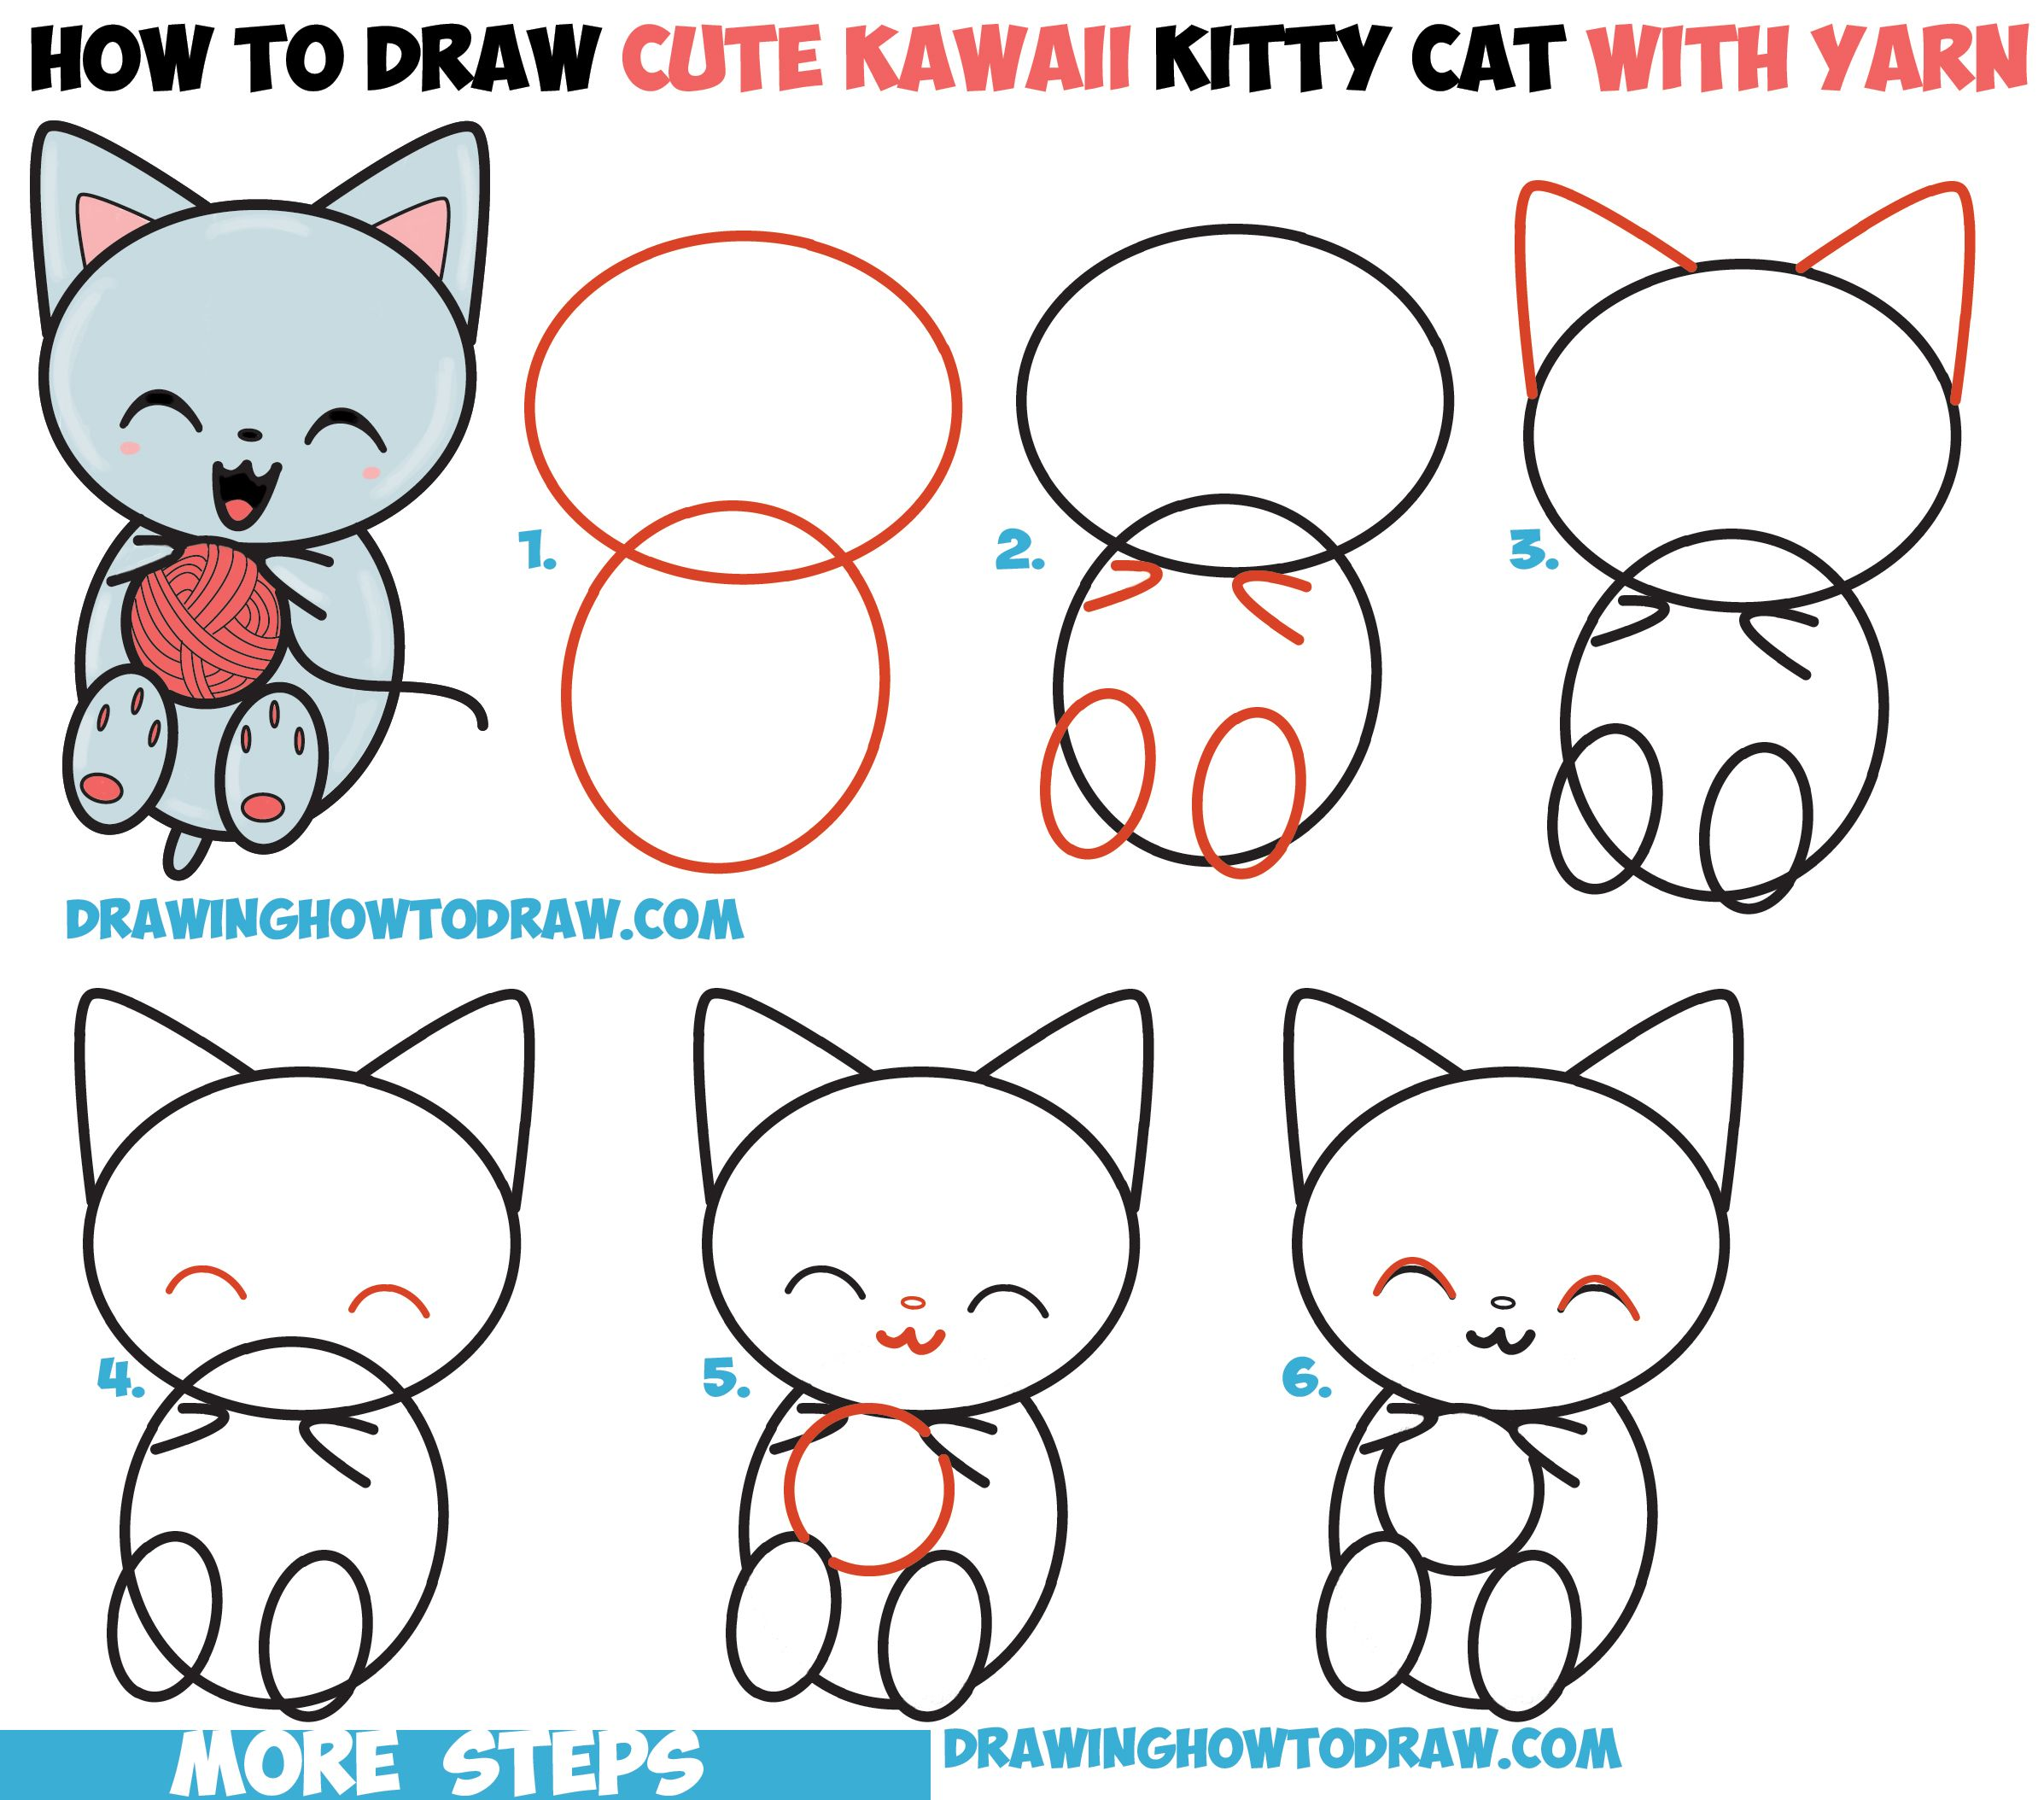 How To Draw Cute Kawaii Kitten Cat Playing With Yarn From Number 8 Shape Easy Step By Step Drawing Tutorial For Kids How To Draw Step By Step Drawing Tutori